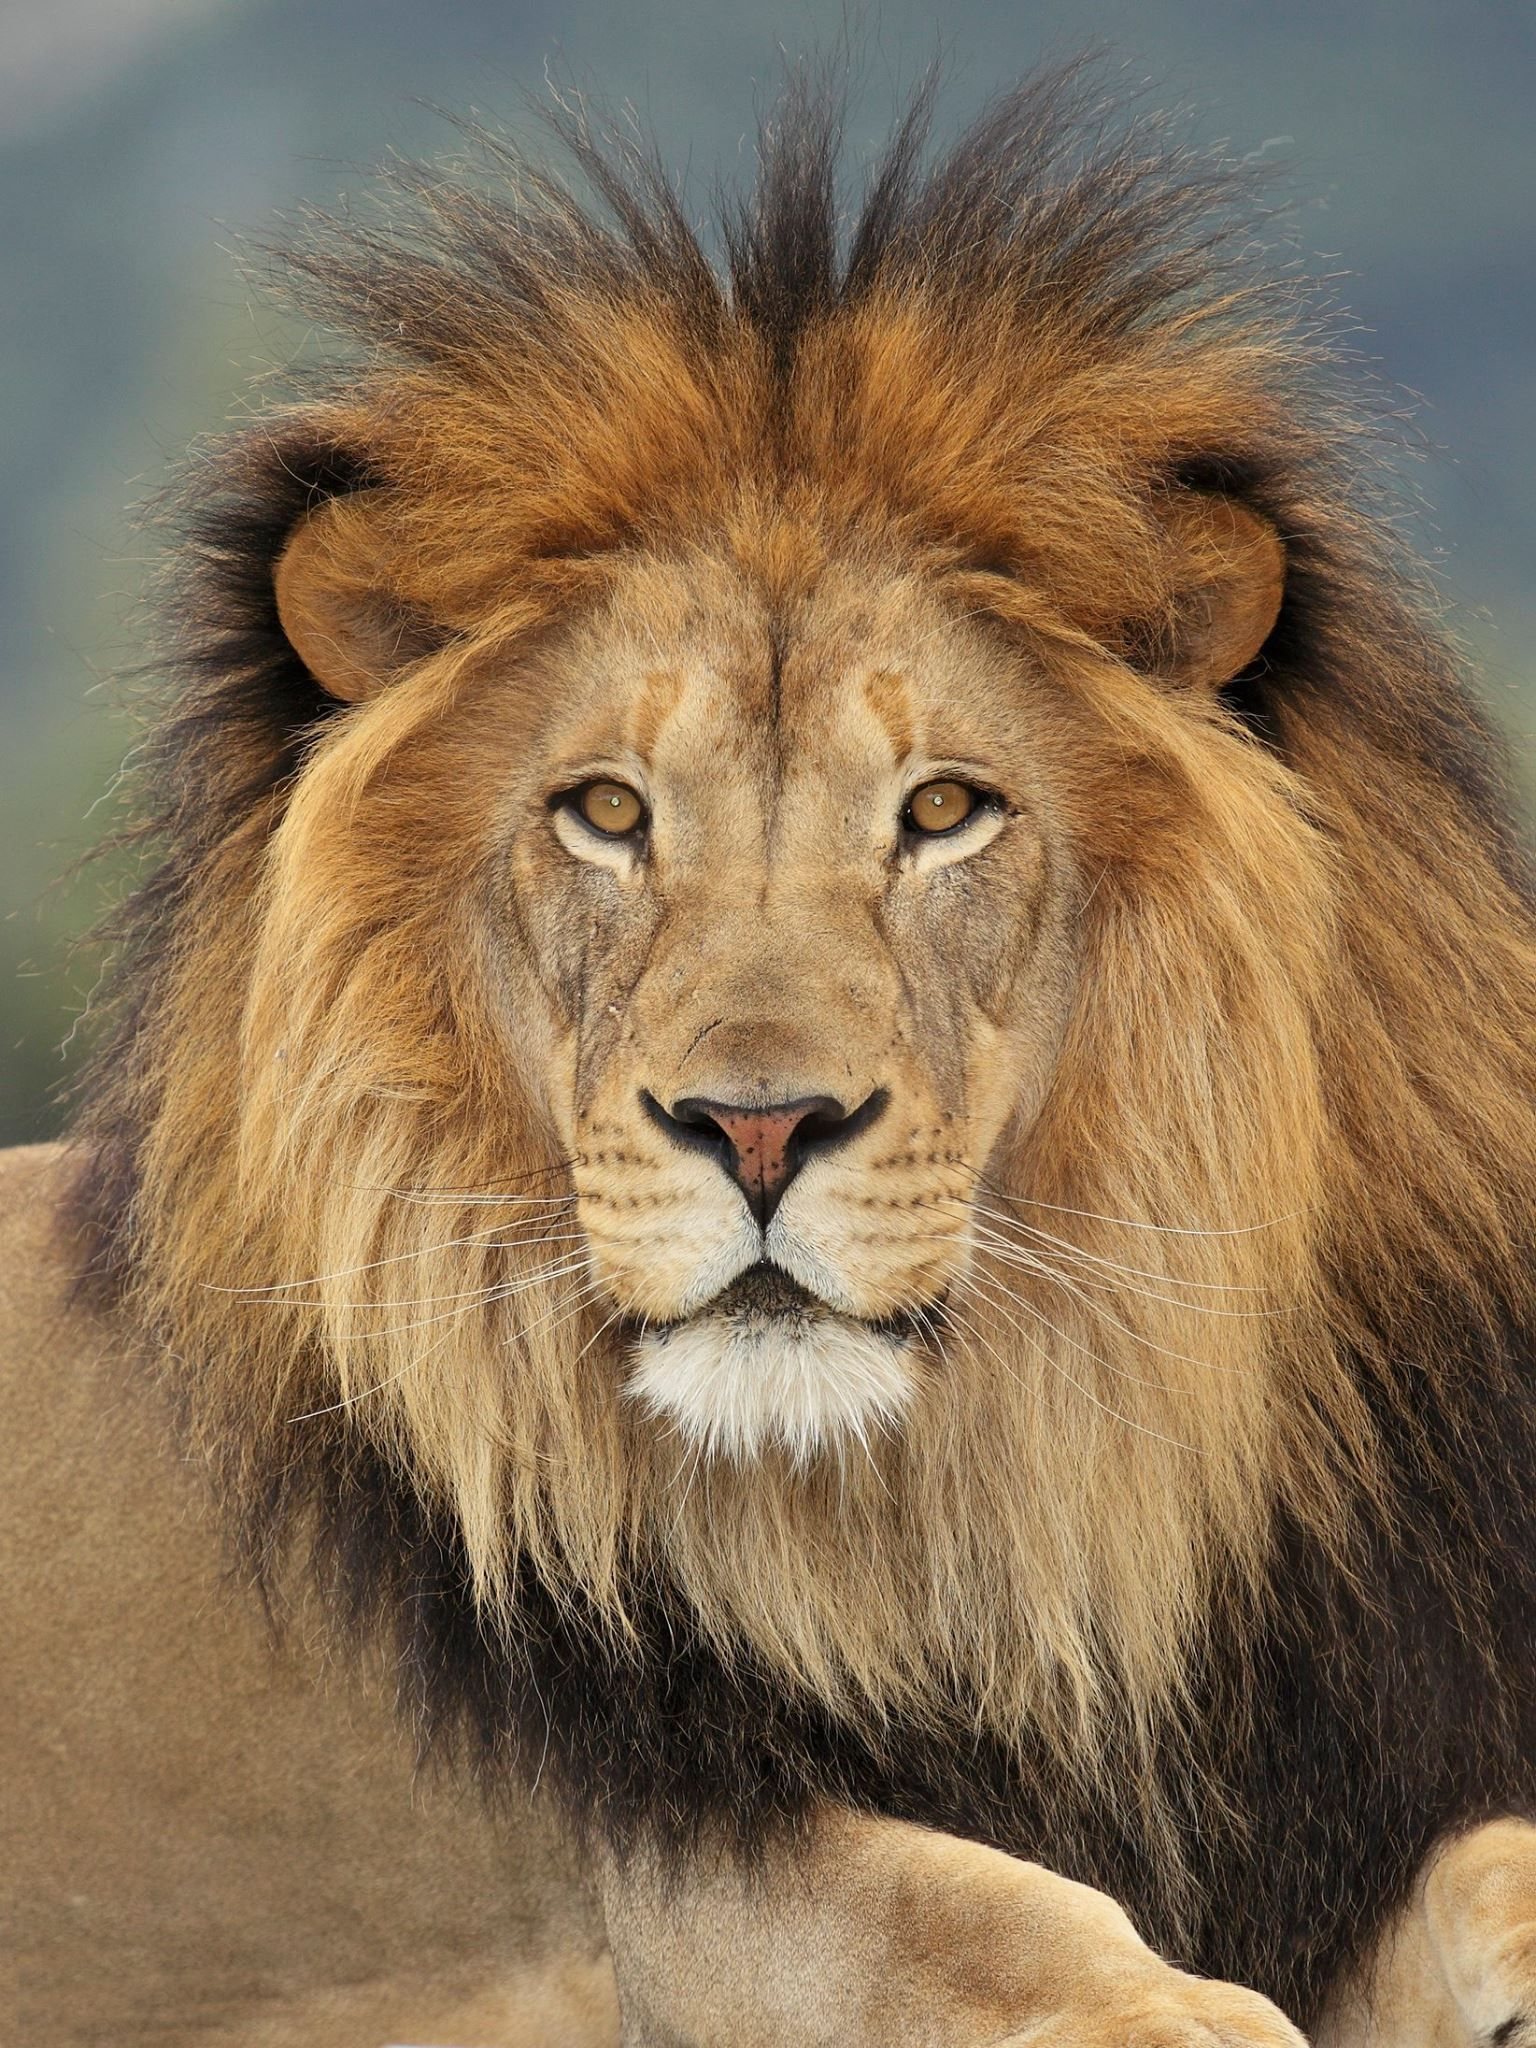 Pin by aslan on Animal | Lion facts, Lion, Lions photos